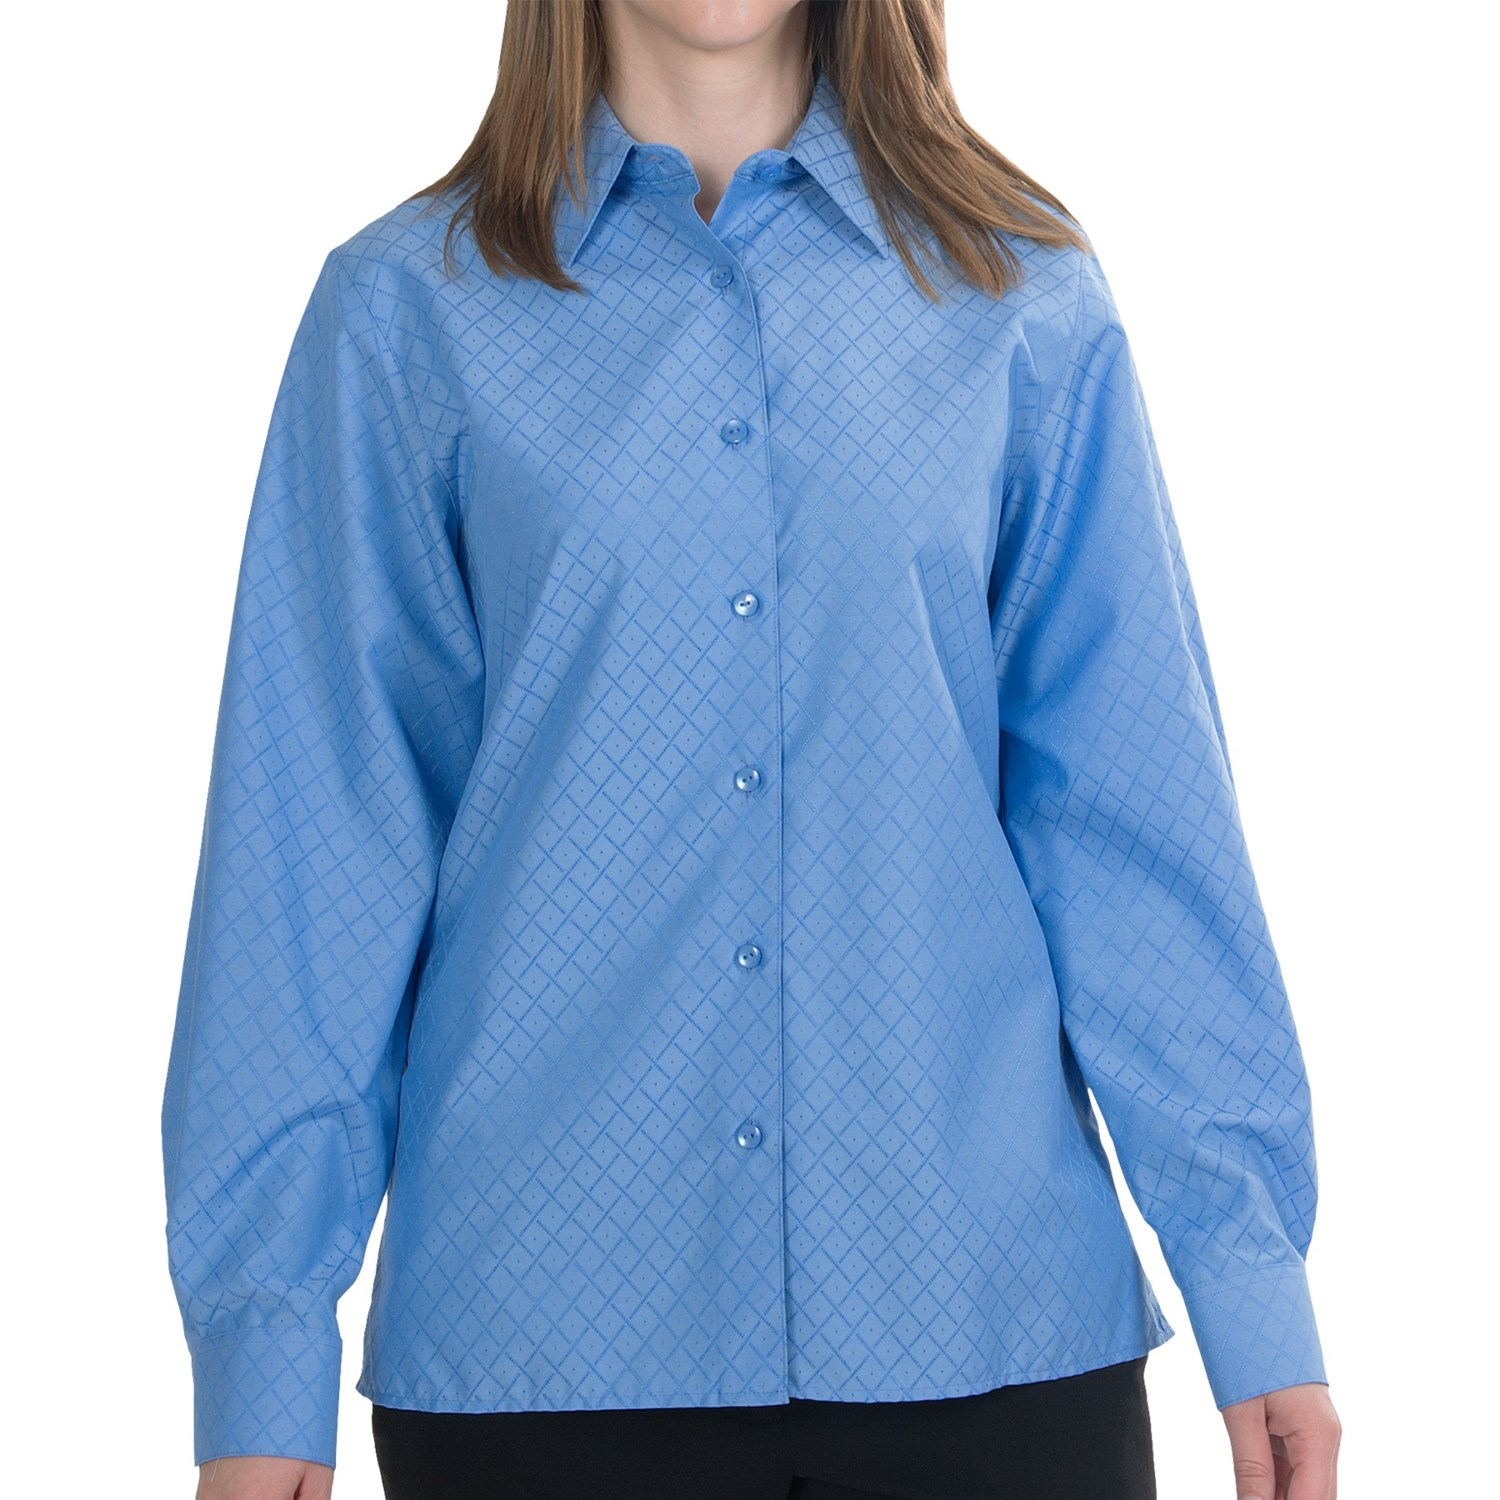 Foxcroft Cotton Classic Fit Shirt For Women 6630h Save 97